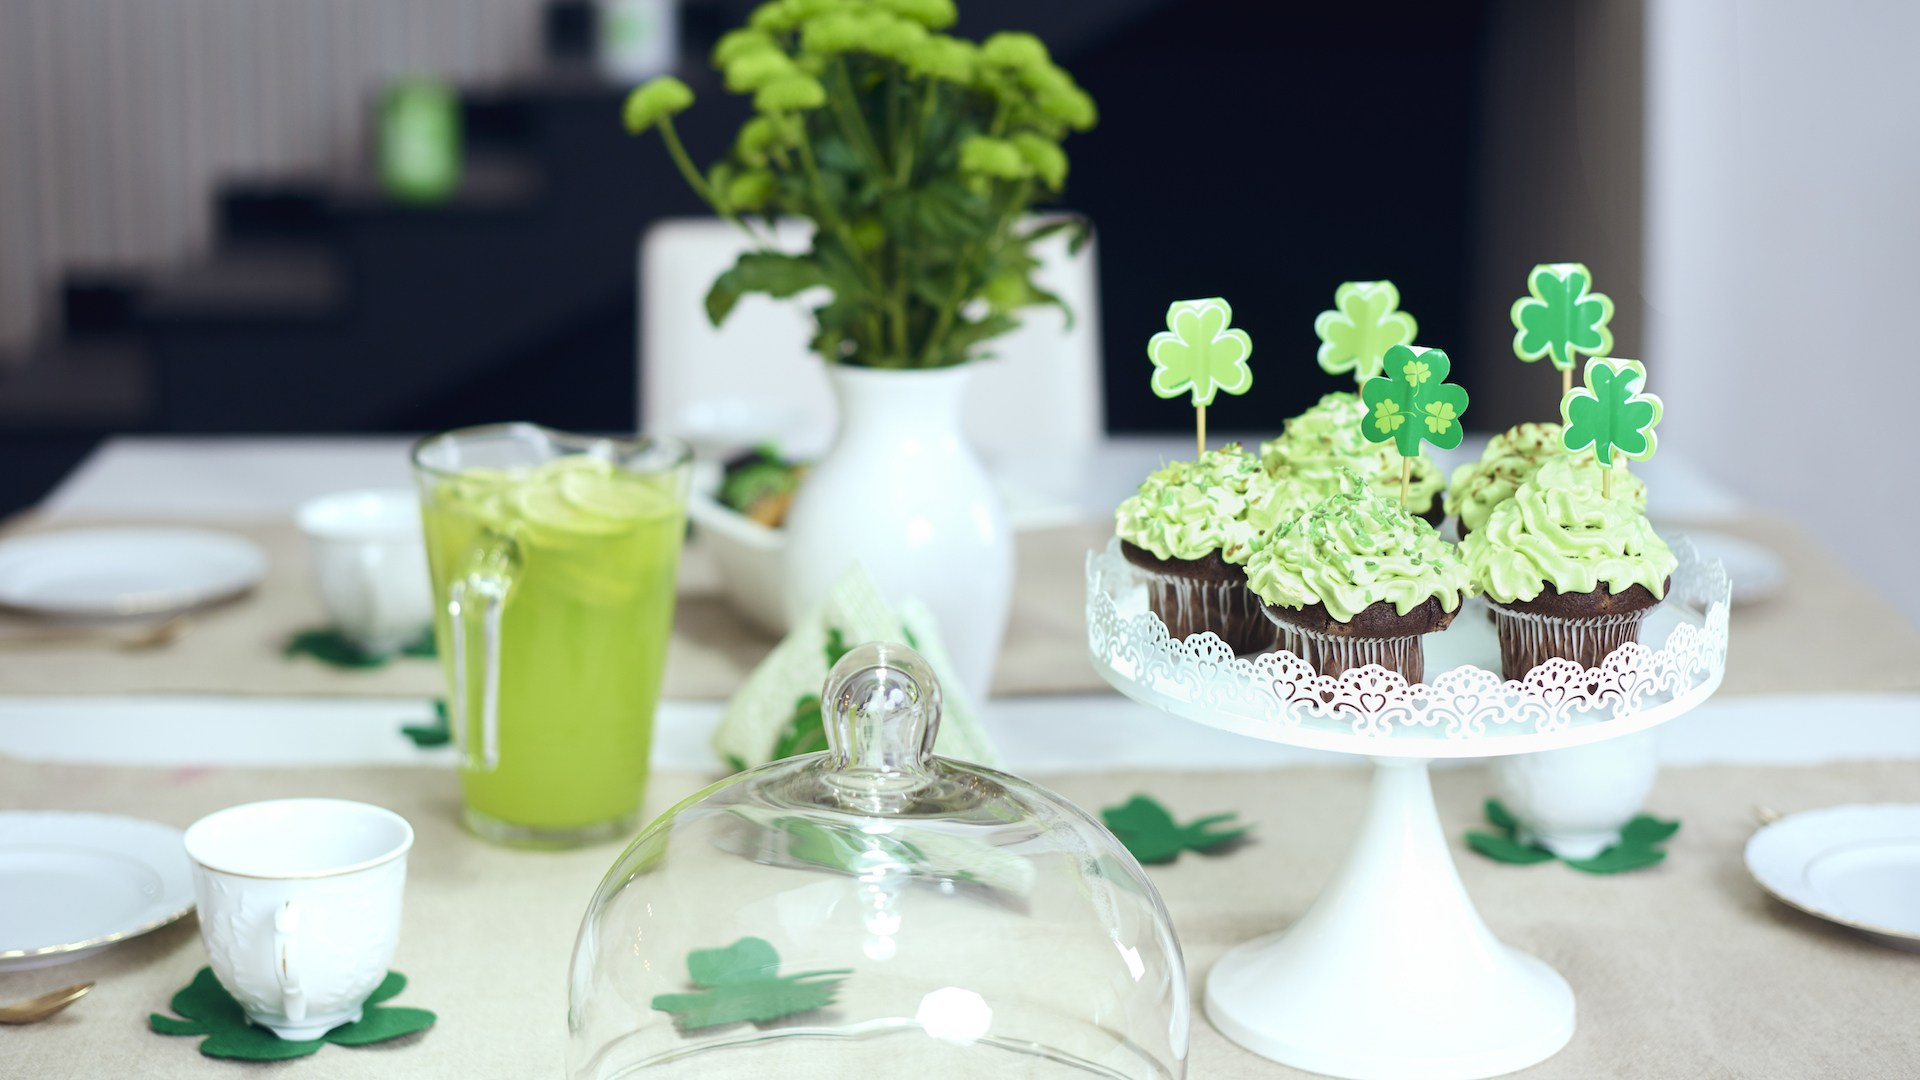 6 St Patricks Day Desserts to Make the Day Even Sweeter SheKnows 1920x1080